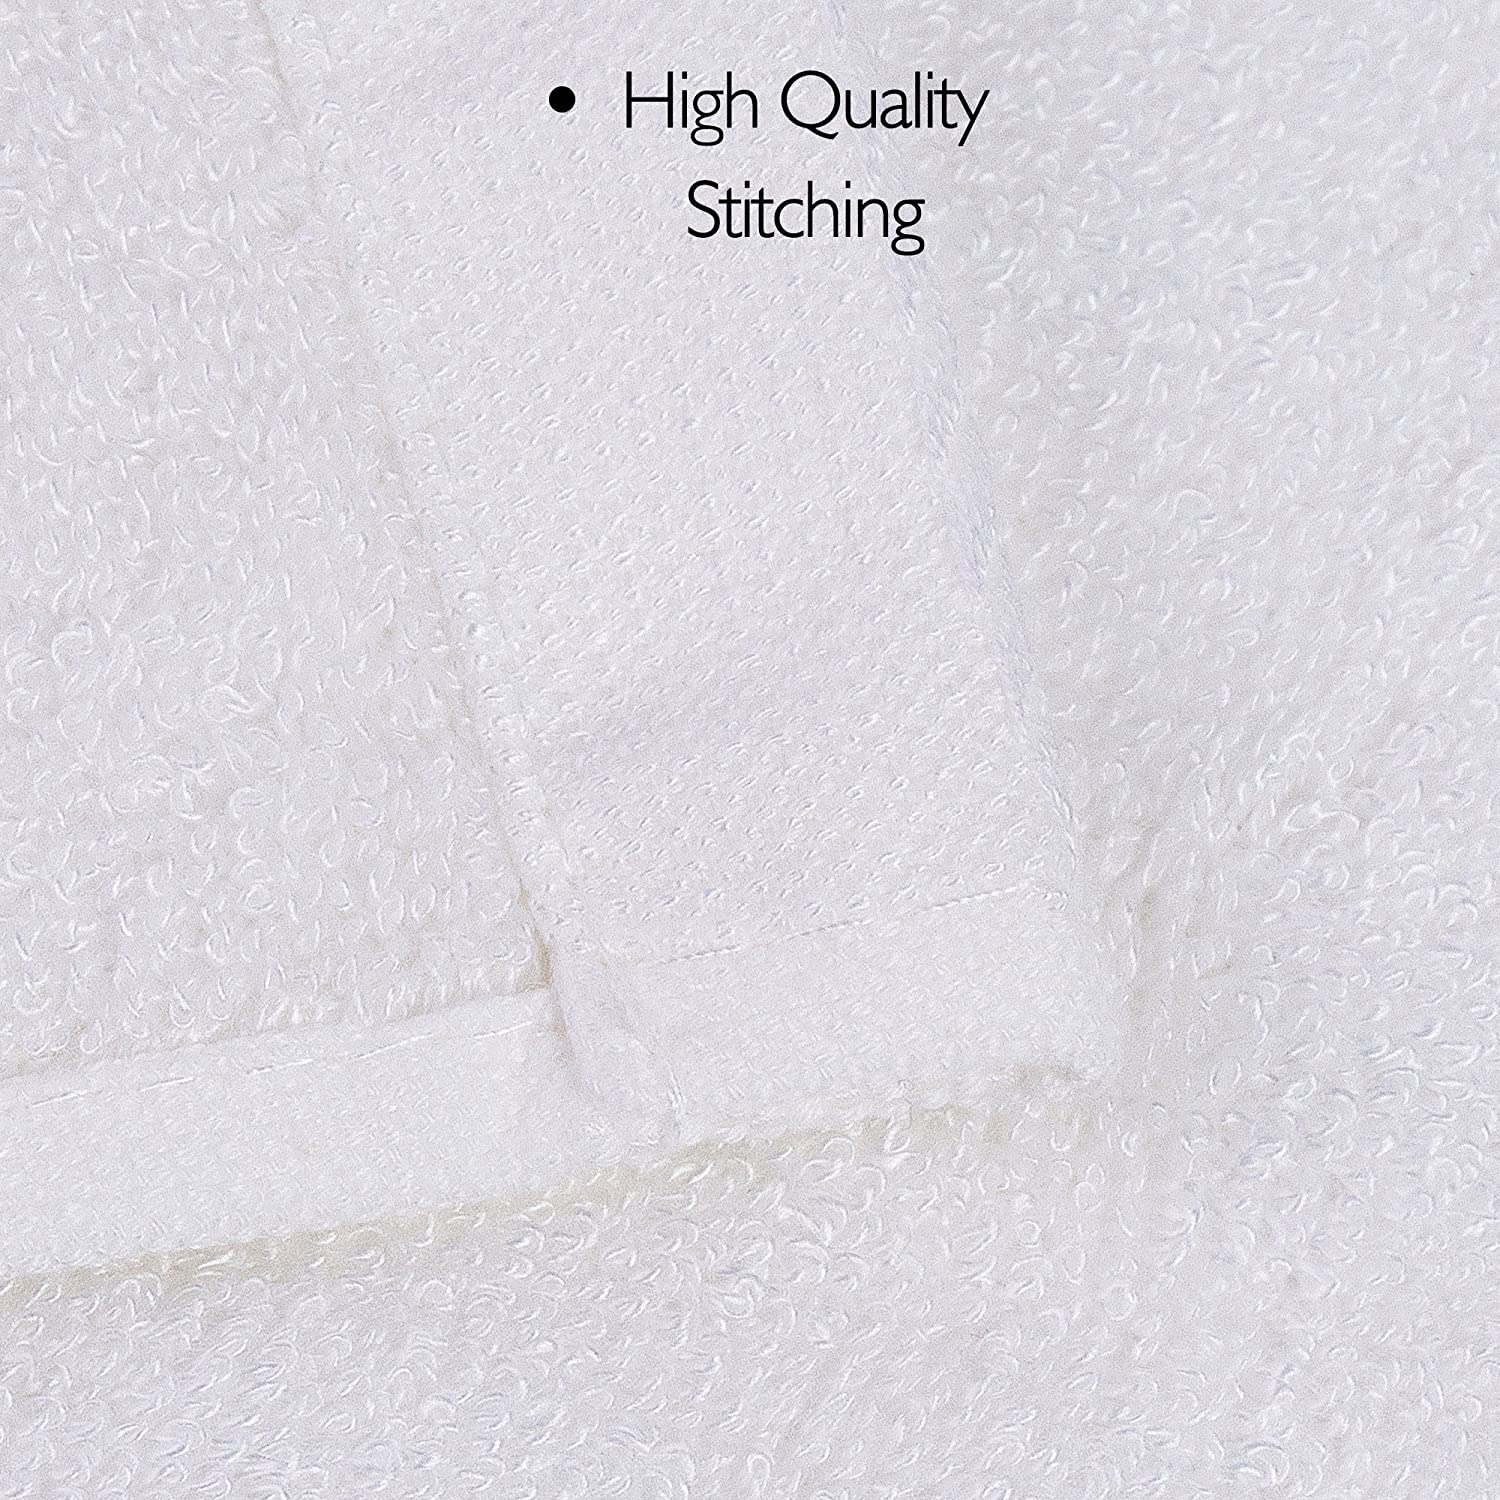 Jml Bamboo Bath Towels - Soft, Absorbent, Antibacterial and Hypoallergenic White